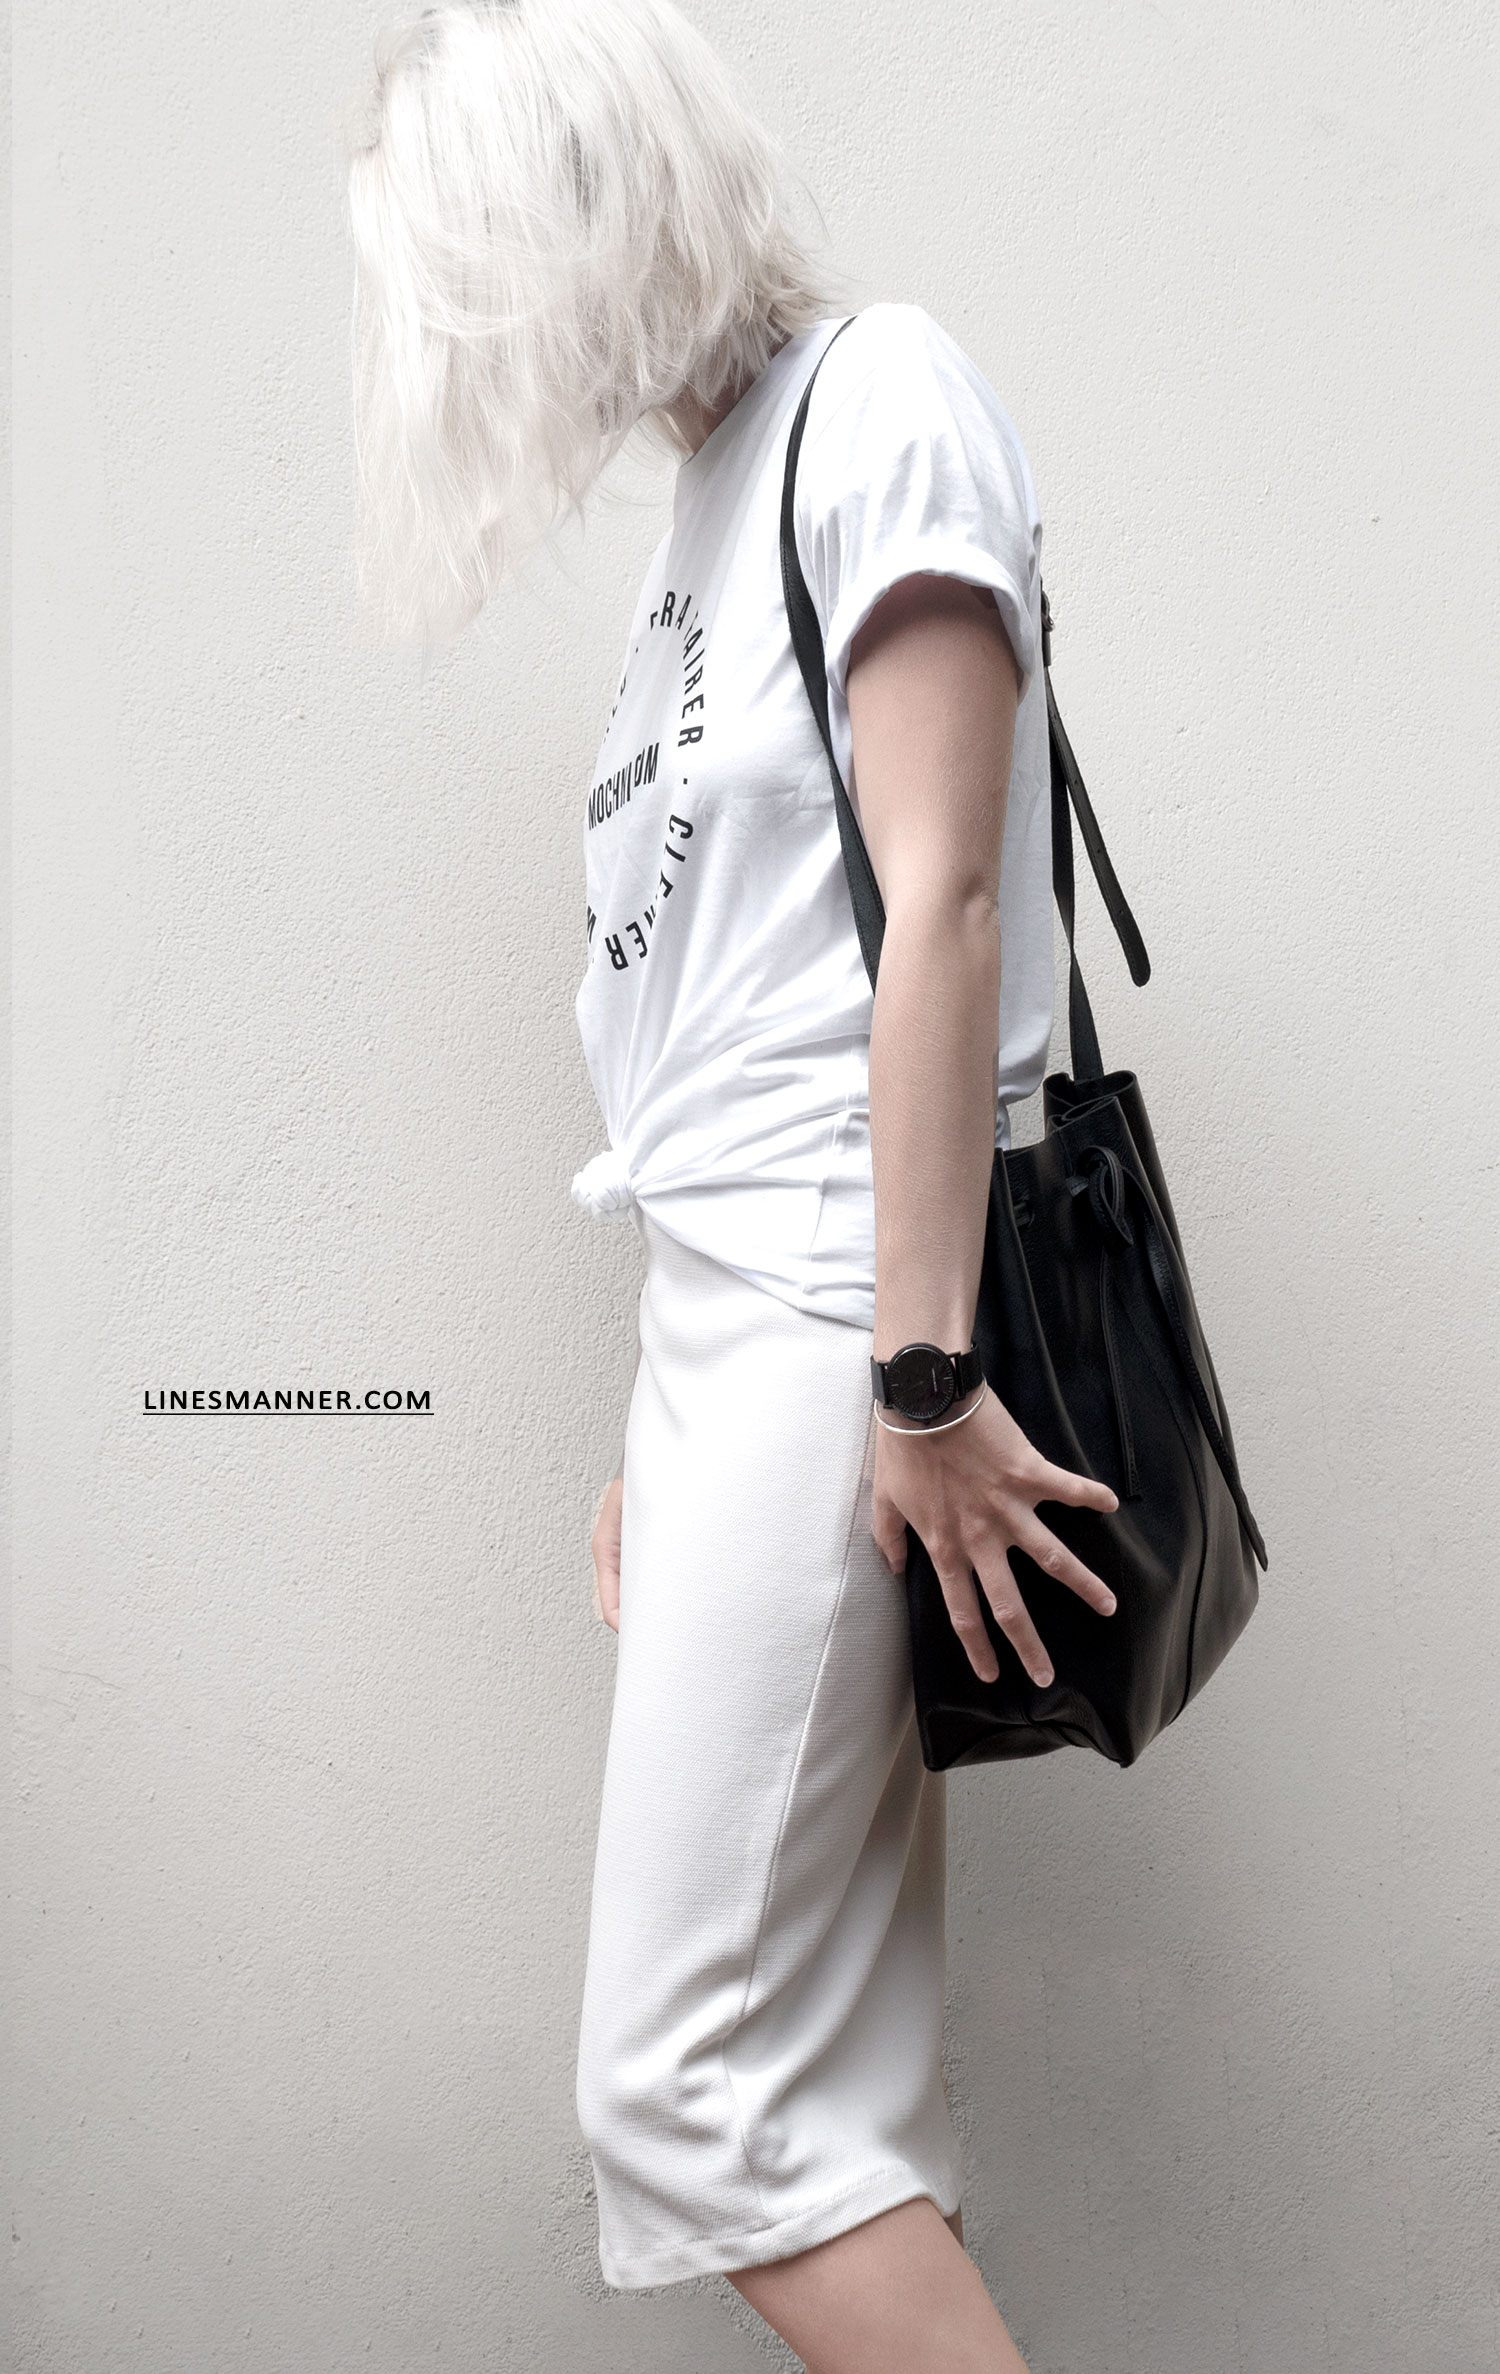 Lines-Manner-Mochni-Slow_Fashion_Plateform-Sustainable-Eco_Fashion-Awareness-Tee-Fairer-World-Conscious-Essentials-Minimal-Monochrome-Quality-Organic-10